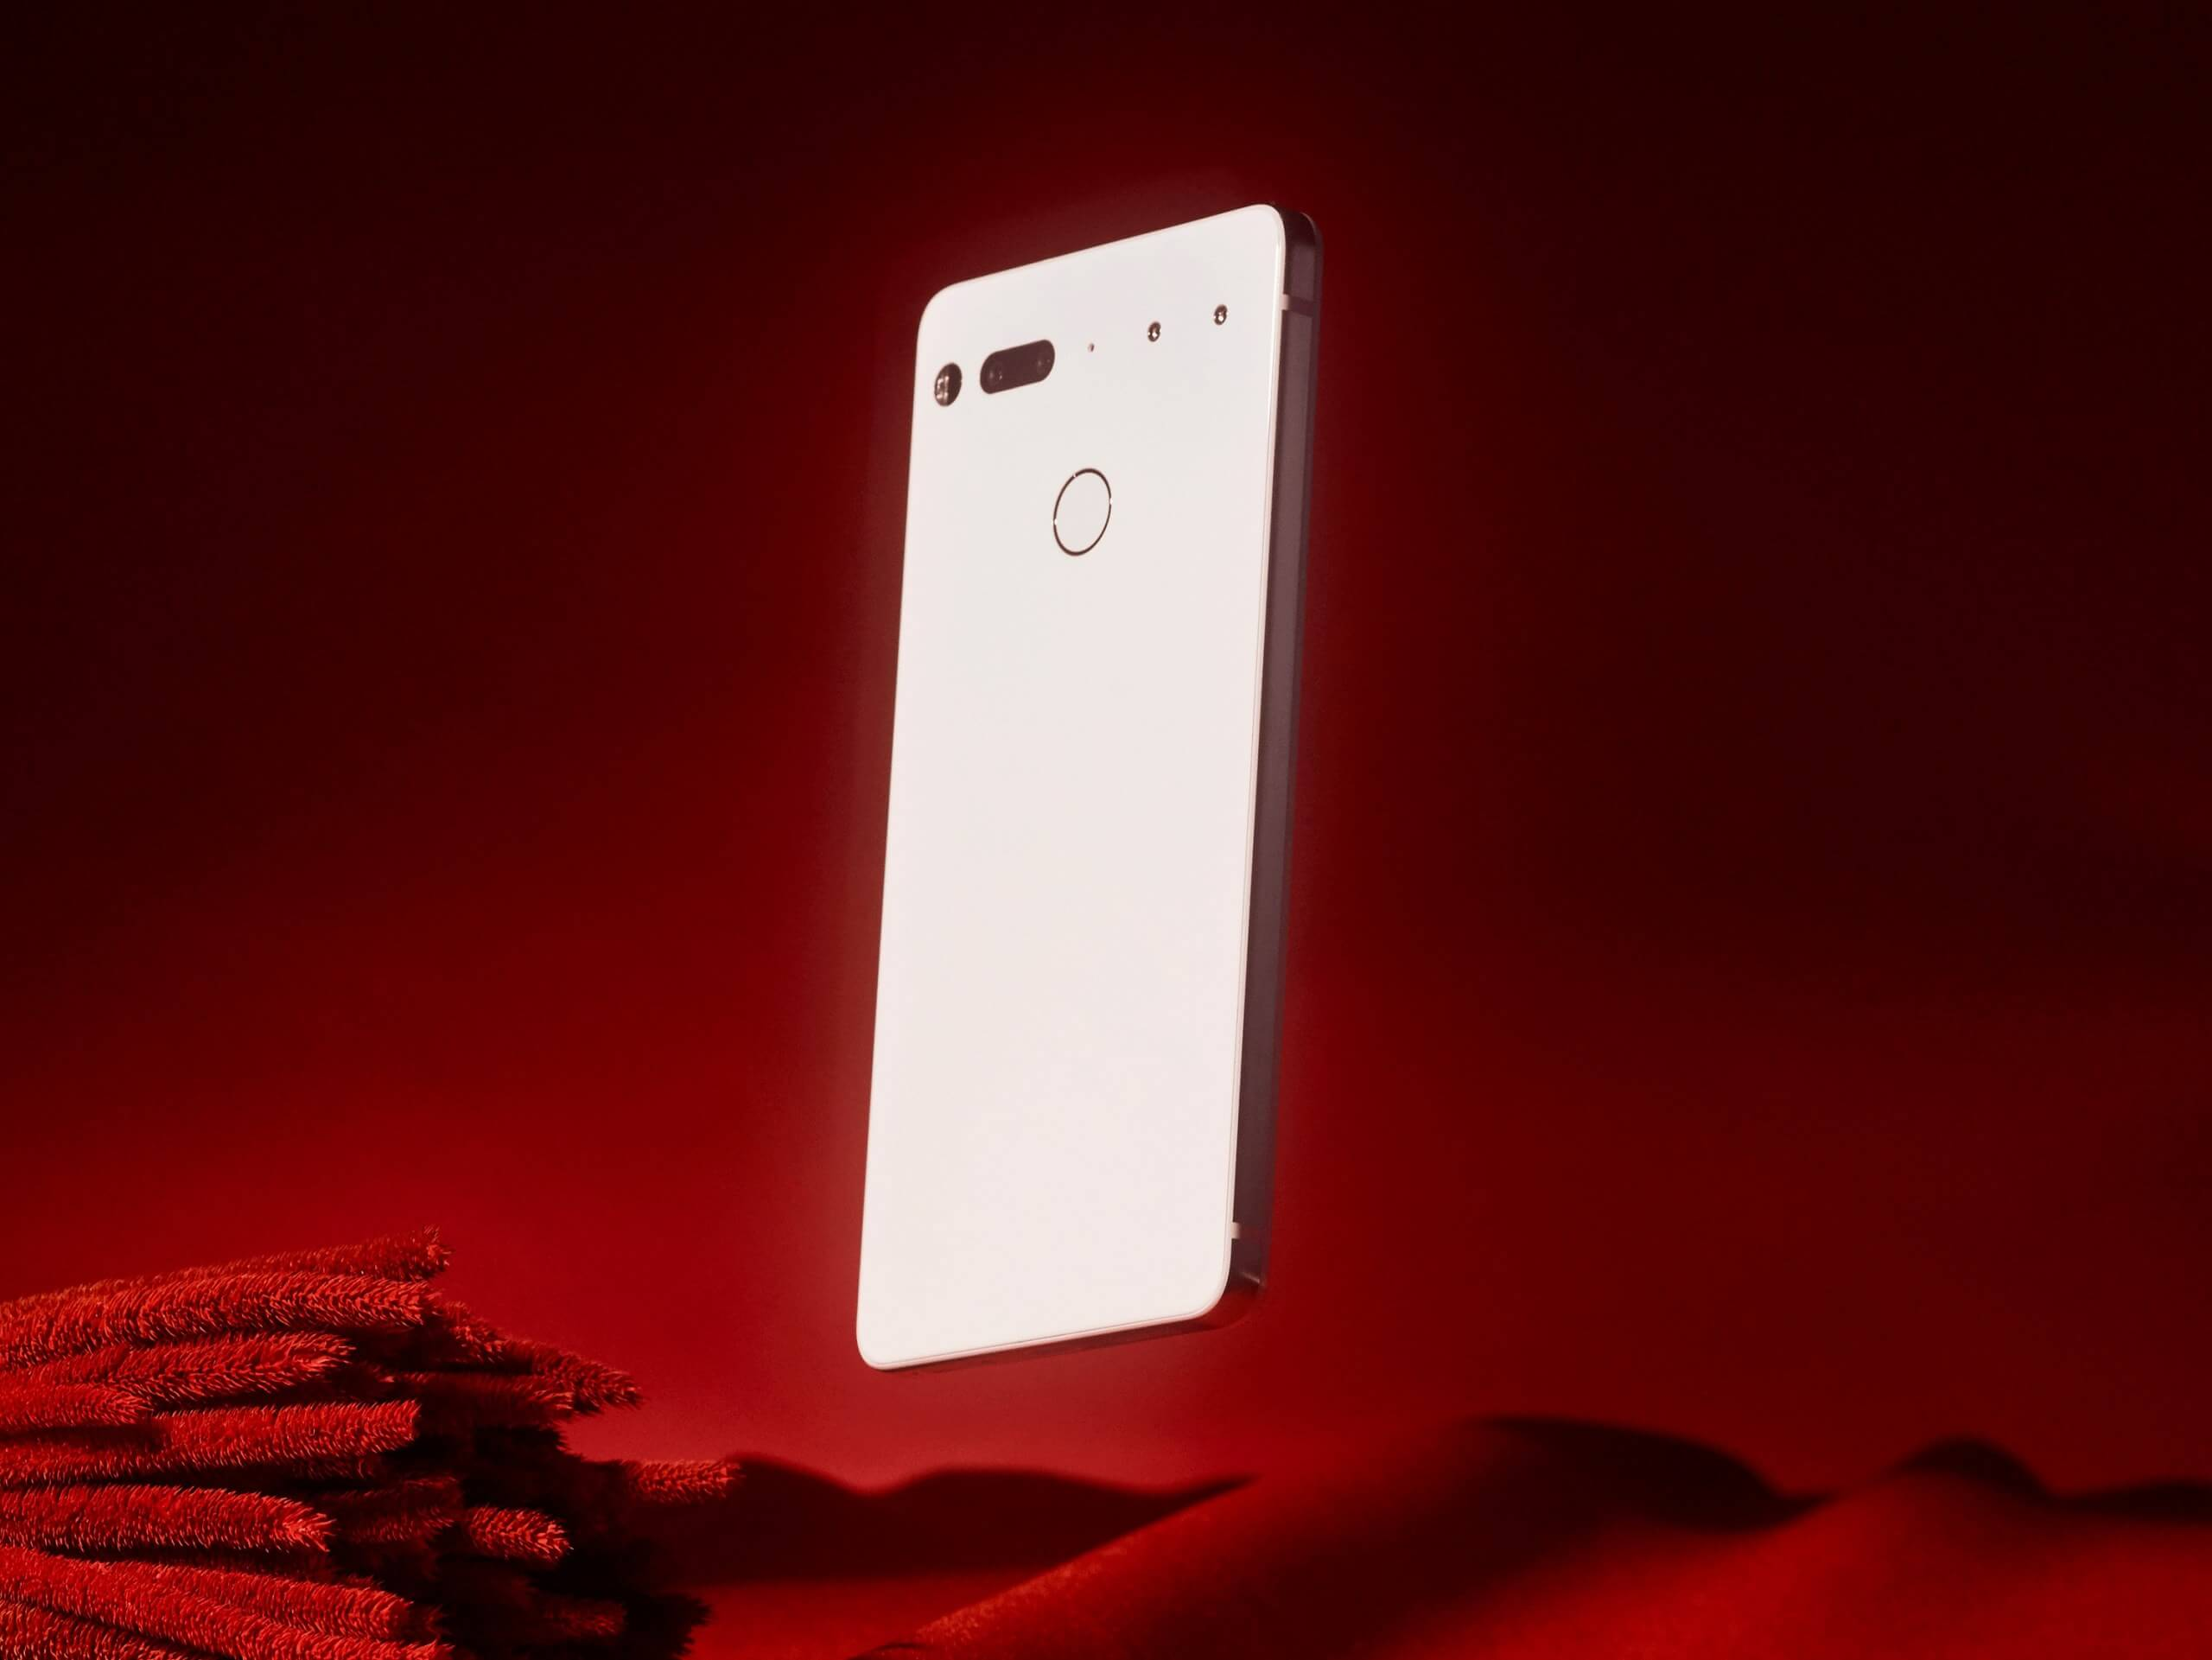 Essential Phone now out of stock at company's website